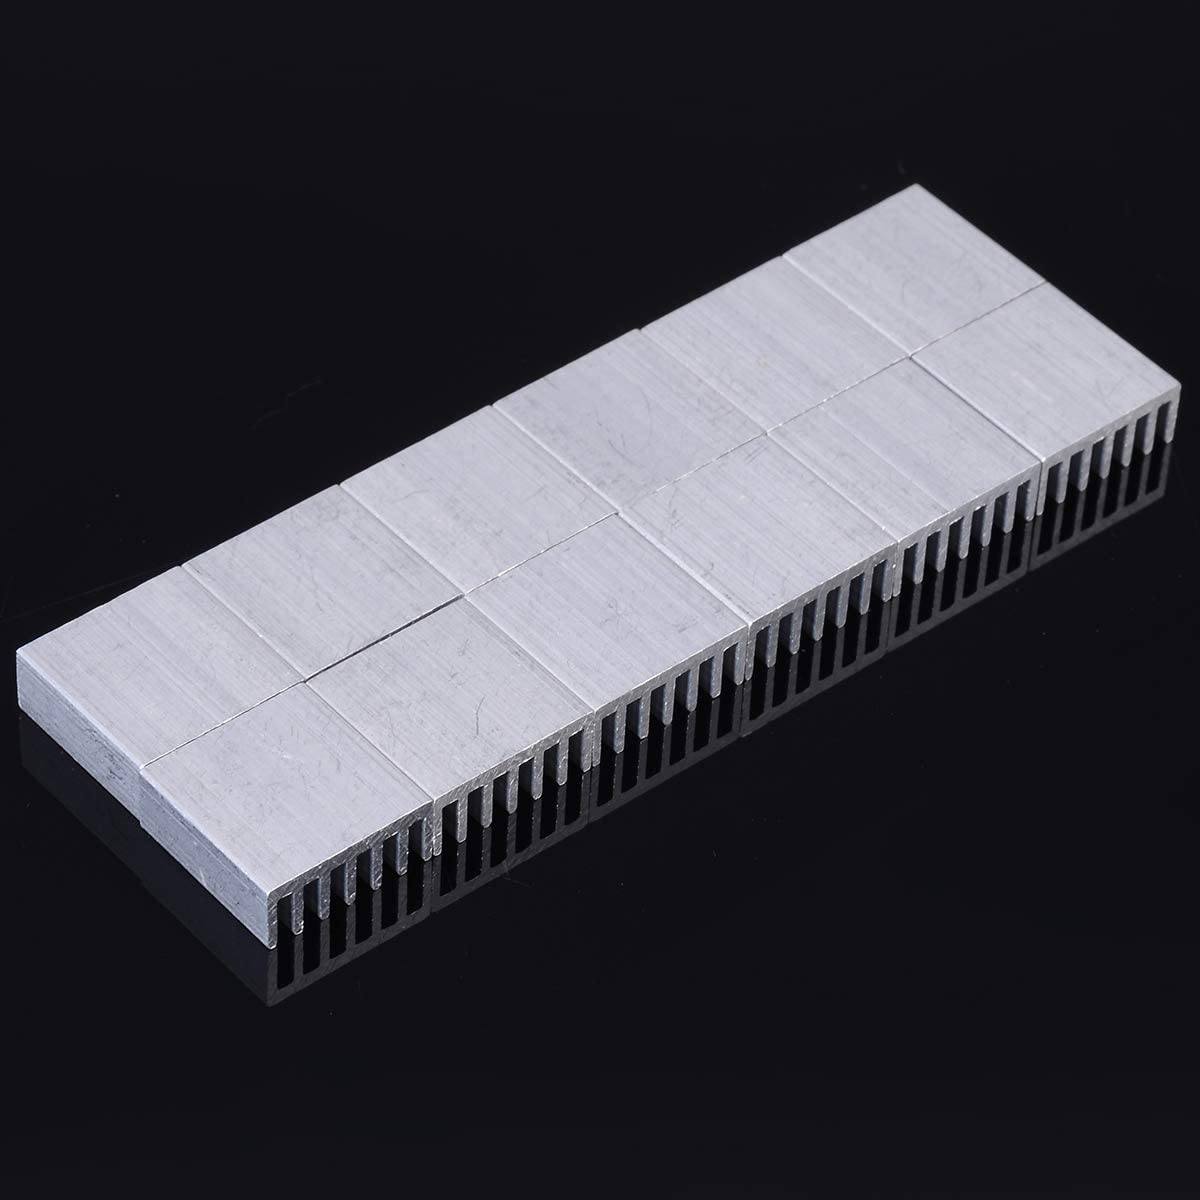 12pcs Computer Cooler Radiator Aluminum Heatsink Heat sink for LED Electronic Chip Heat dissipation Cooling Pads Rolldaso